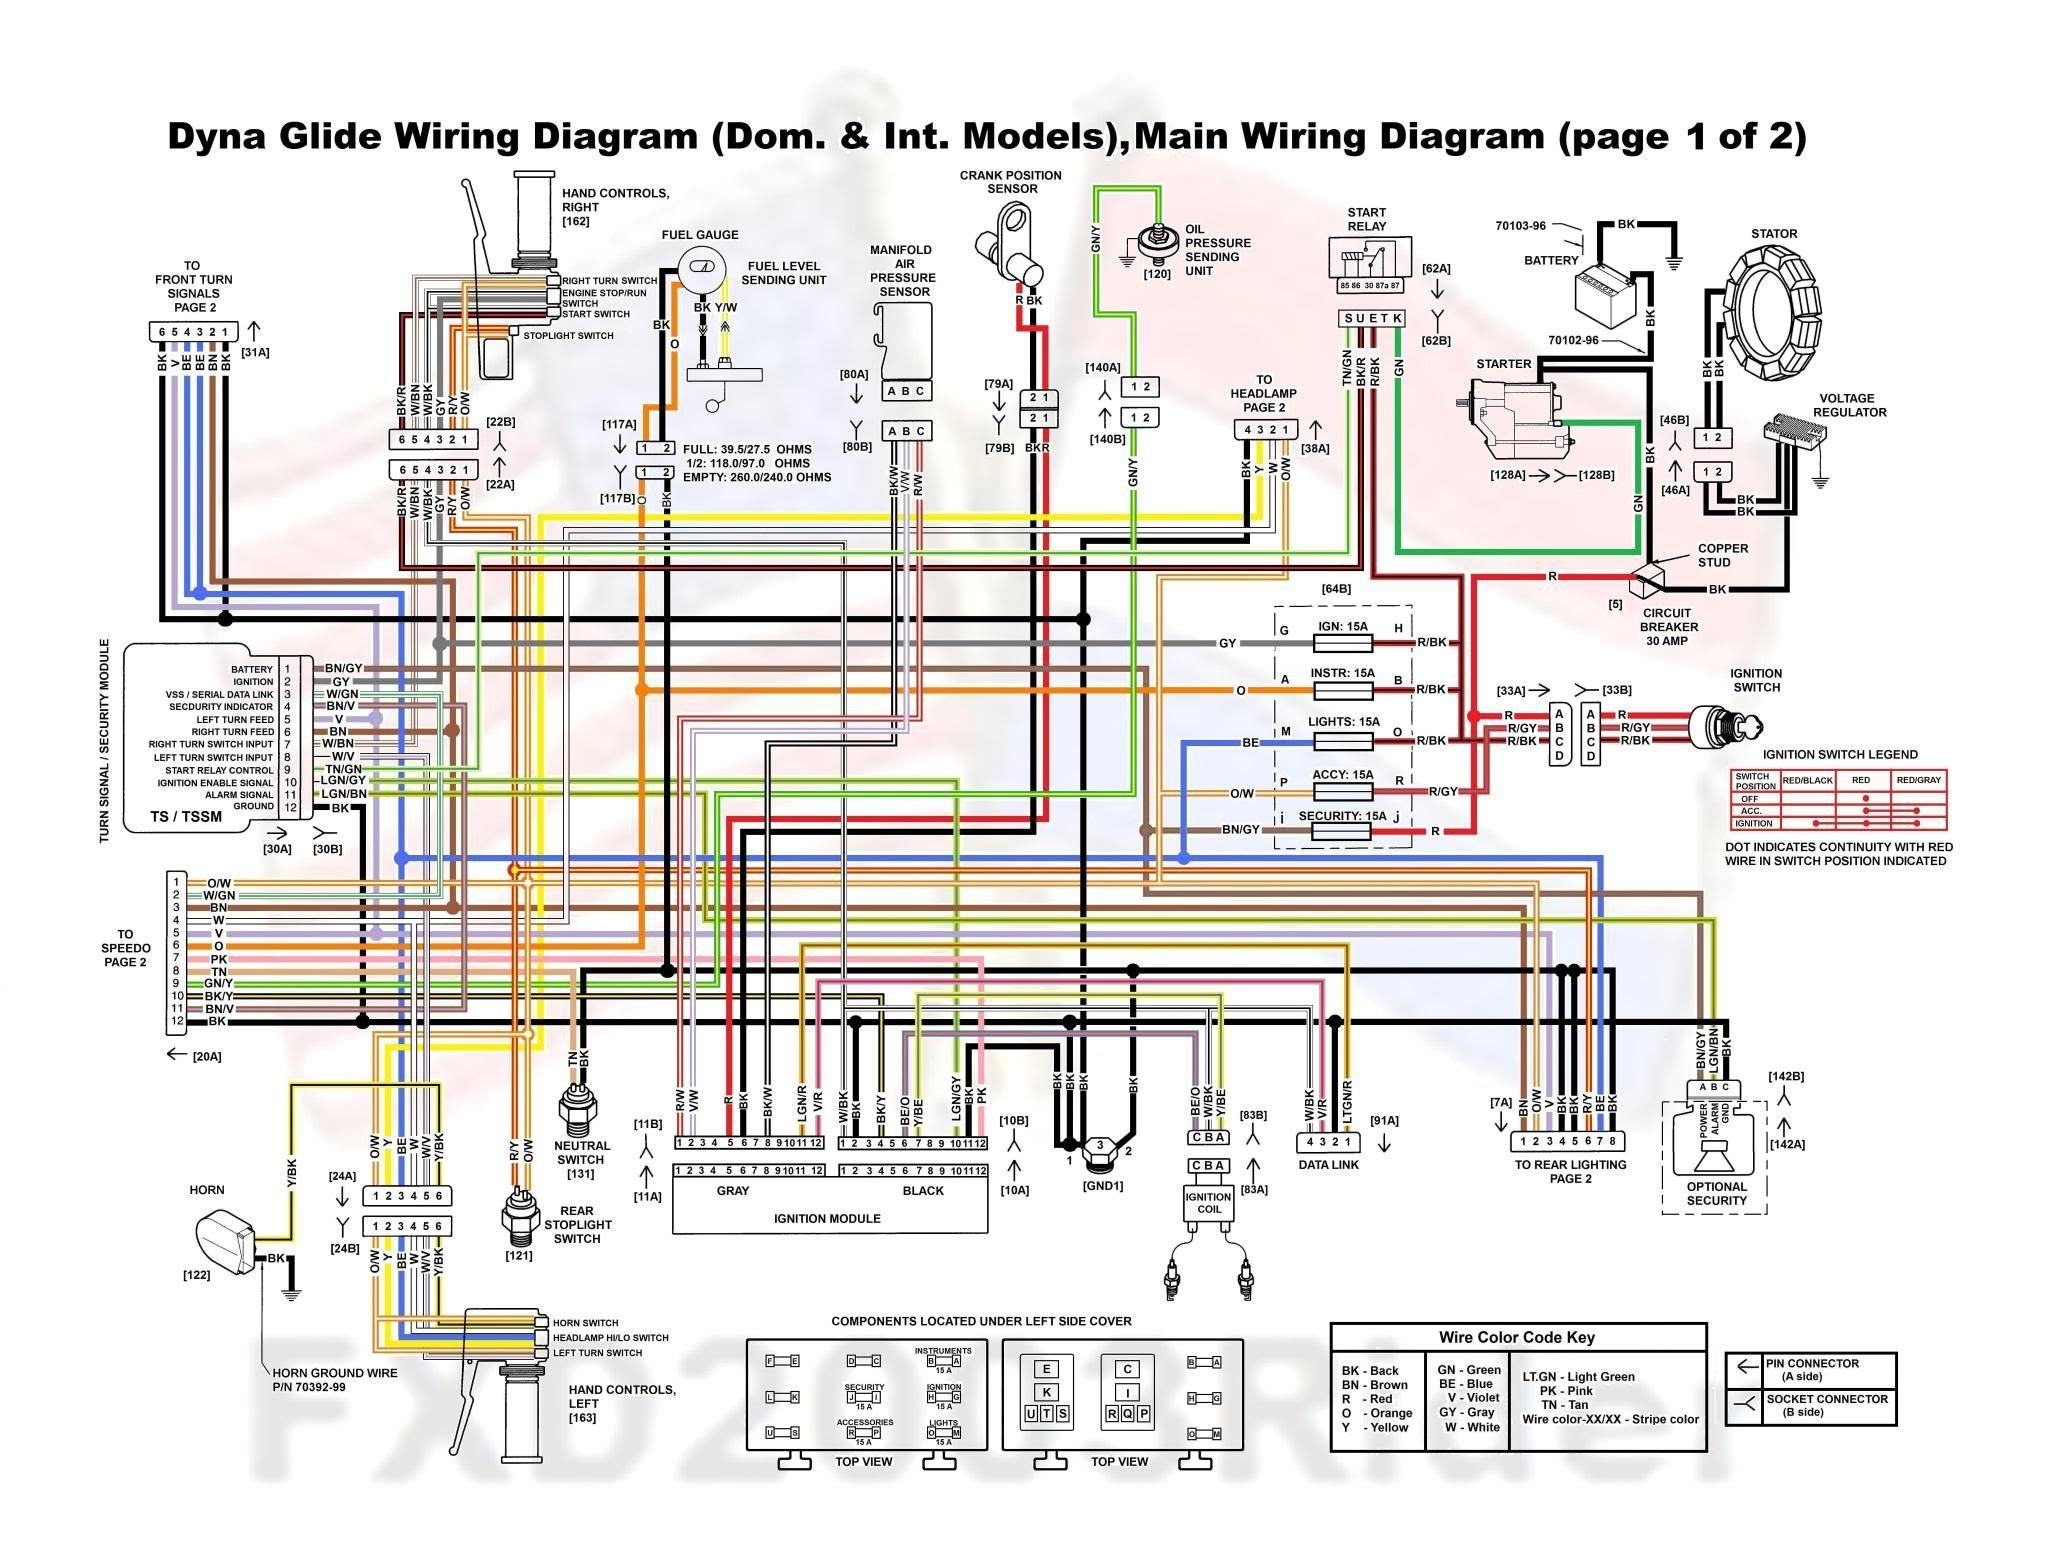 1999 harley wiring diagram - fusebox and wiring diagram net -  net.sirtarghe.it  sirtarghe